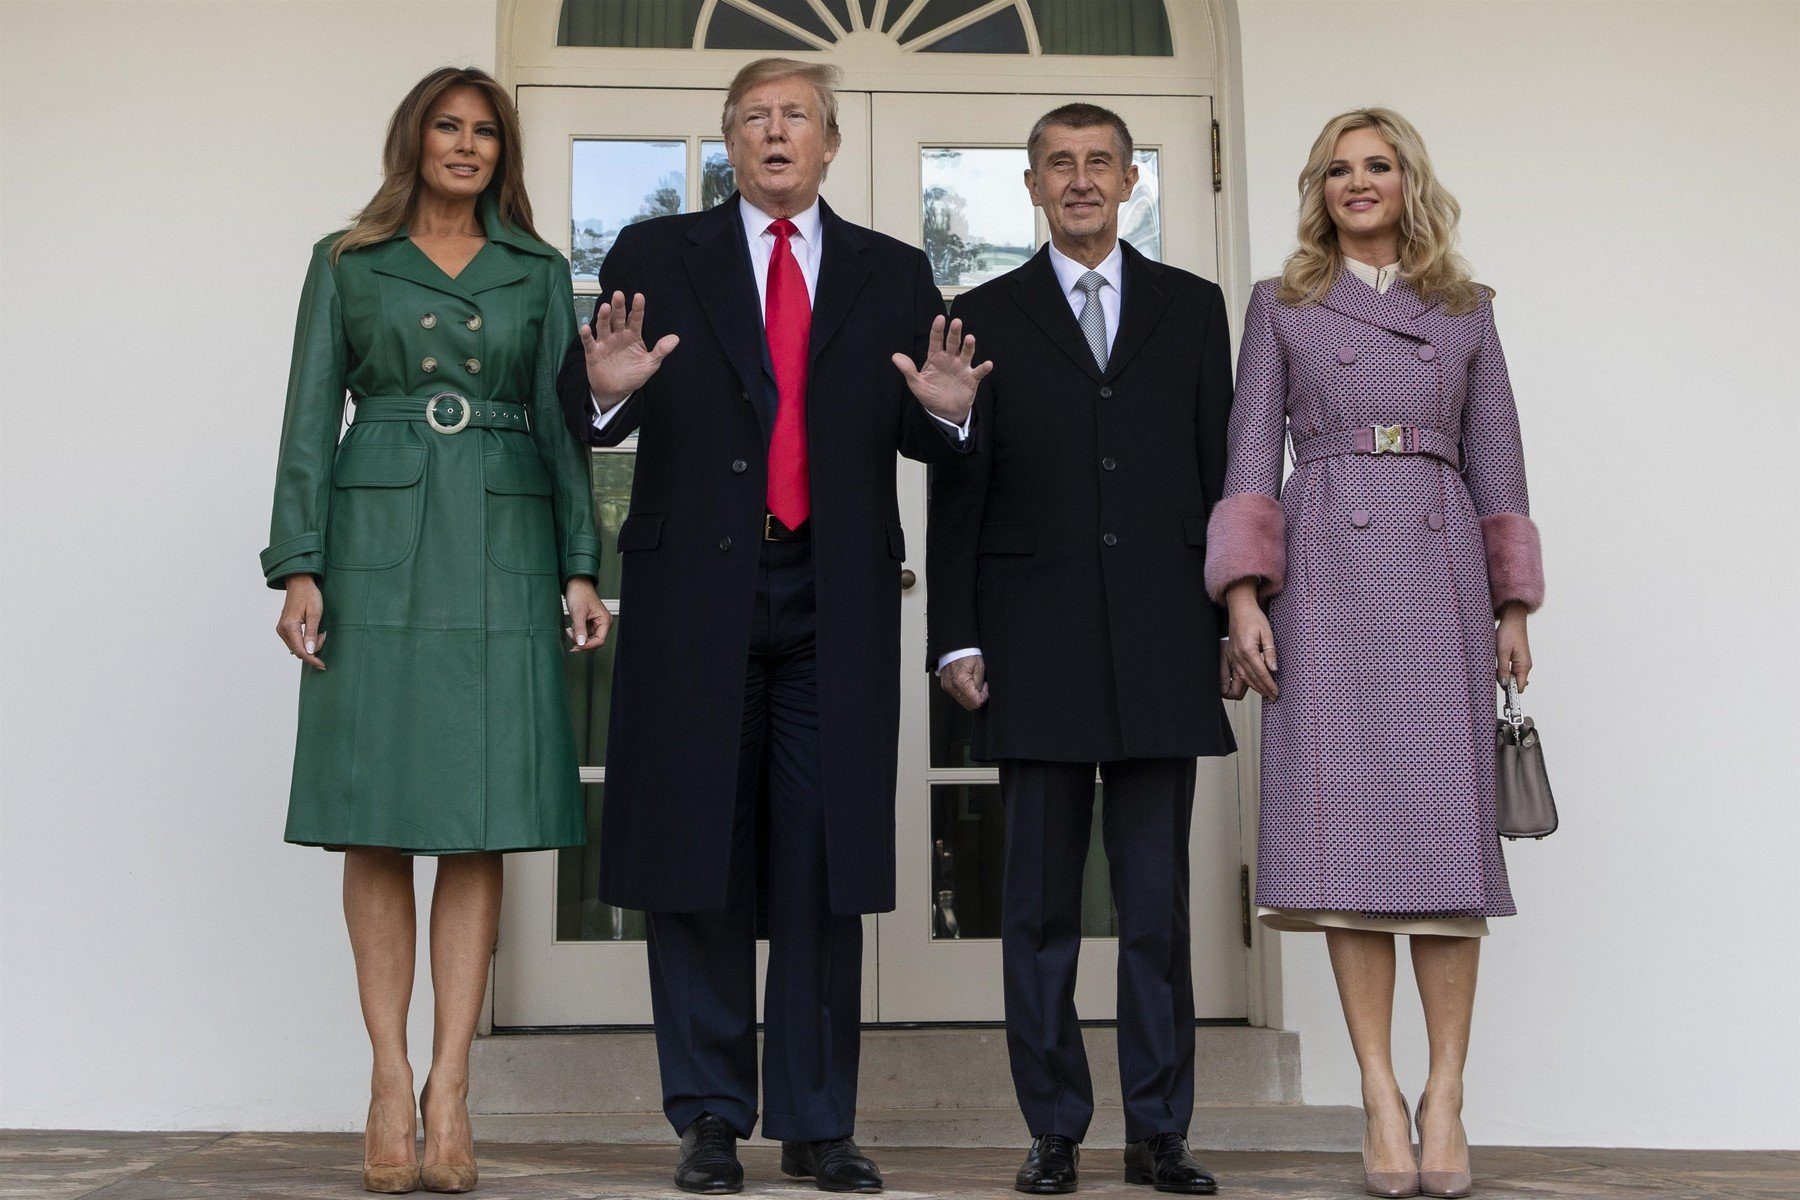 ,   - United States President Donald J. Trump and First Lady Melania Trump pose for a photo with the Prime Minister of the Czech Republic Andrej Babiö and his wife Monika Babiöov· as they arrive at the White House in Washington, D.C. on March 7, 2019., Image: 417982577, License: Rights-managed, Restrictions: , Model Release: no, Credit line: Profimedia, Backgrid USA